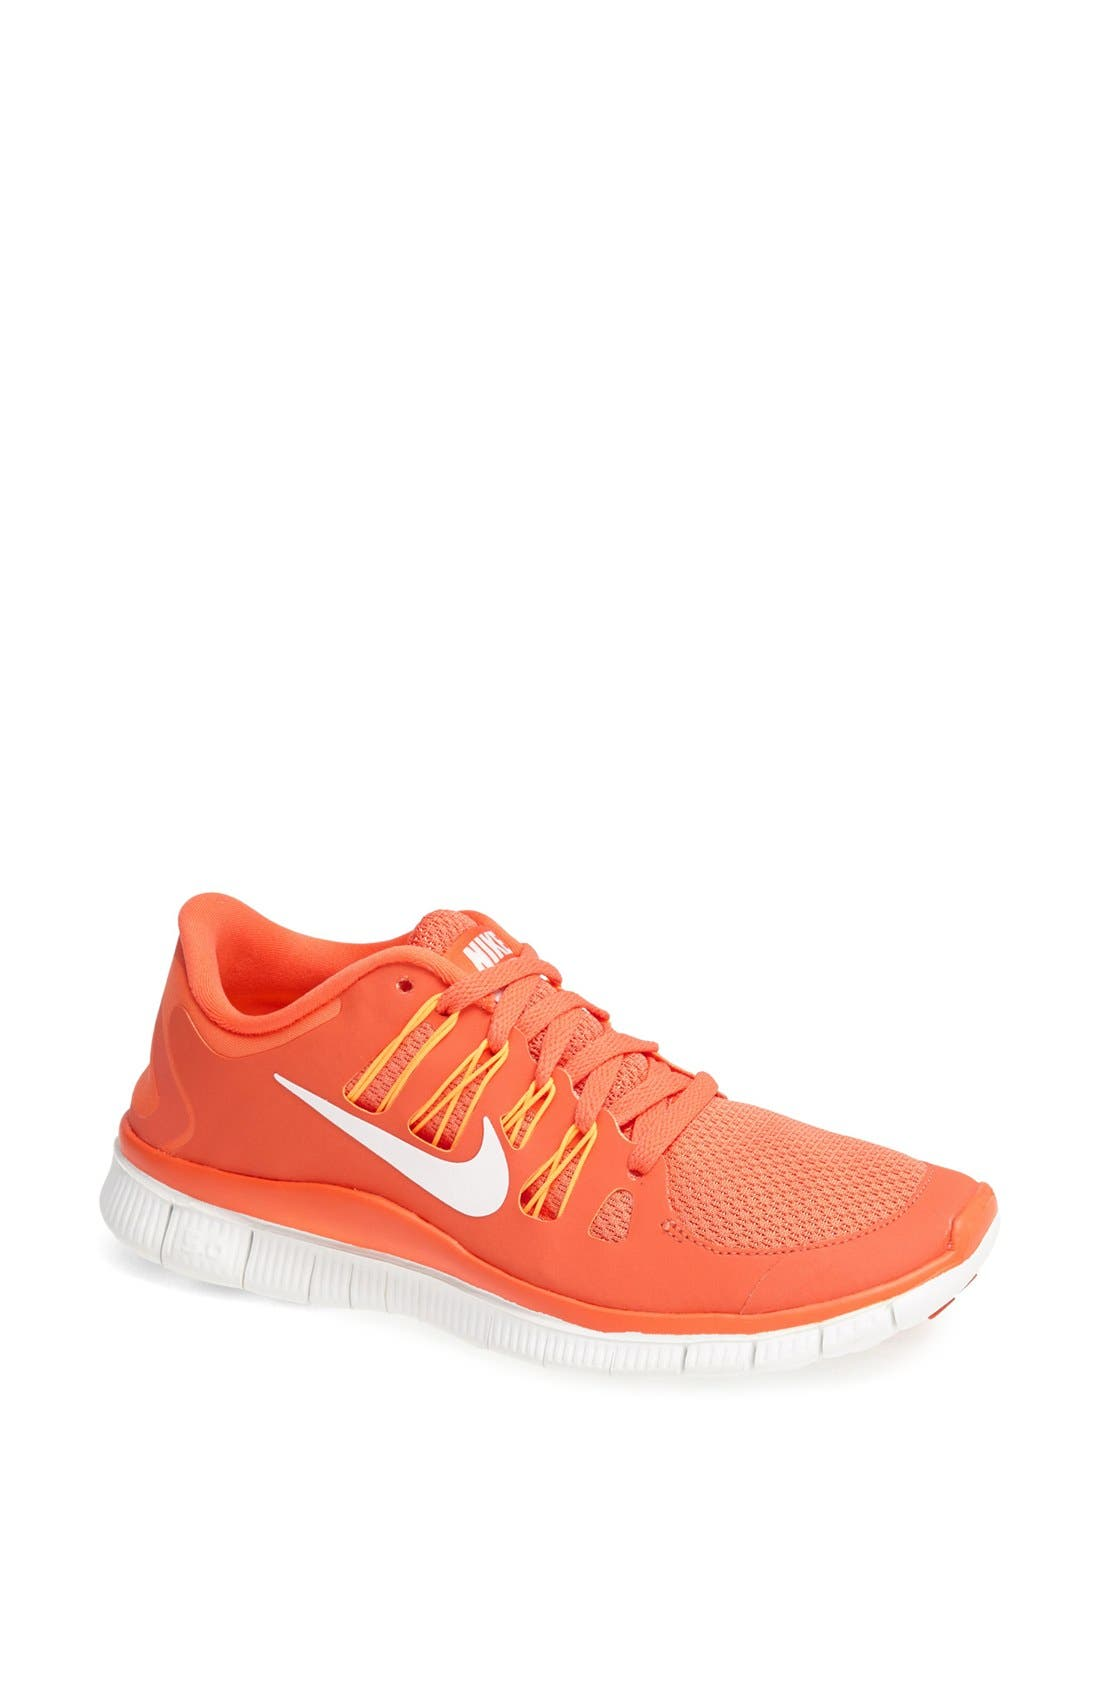 Main Image - Nike 'Free 5.0' Running Shoe (Women)